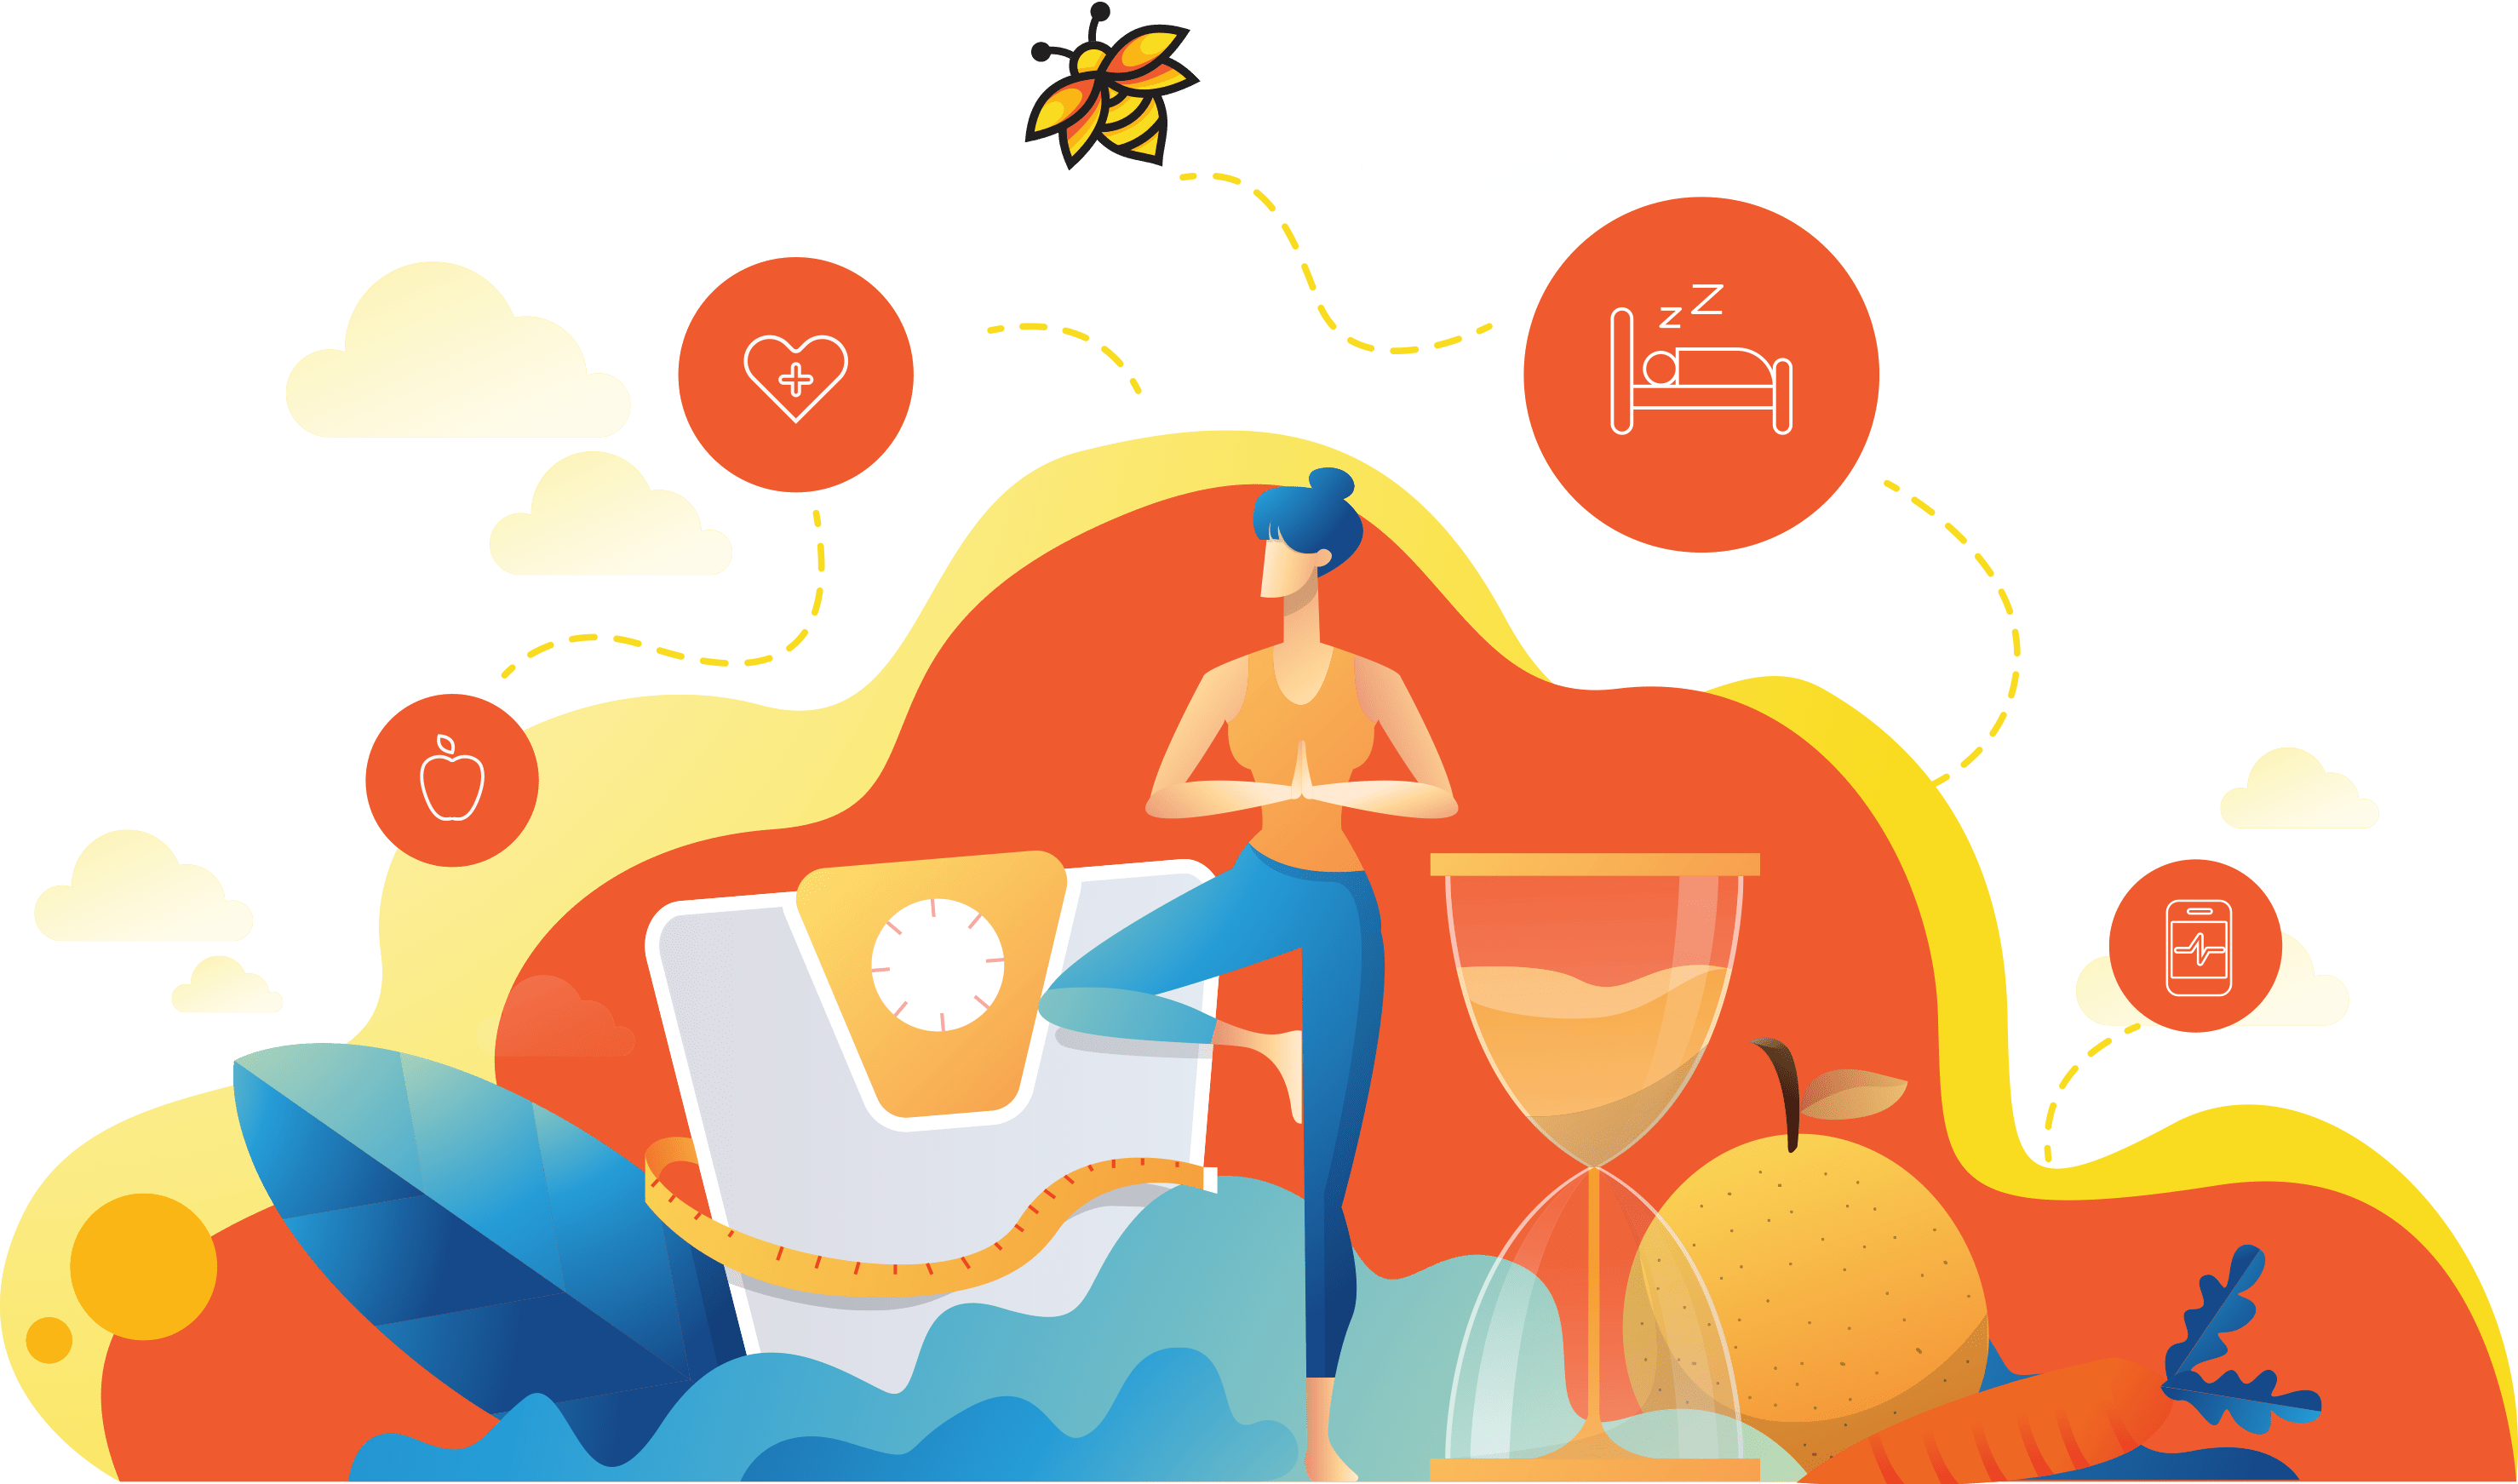 Vector image depicting various lifestyle changes like food, exercise, sleep, screen time to be followed for weight loss